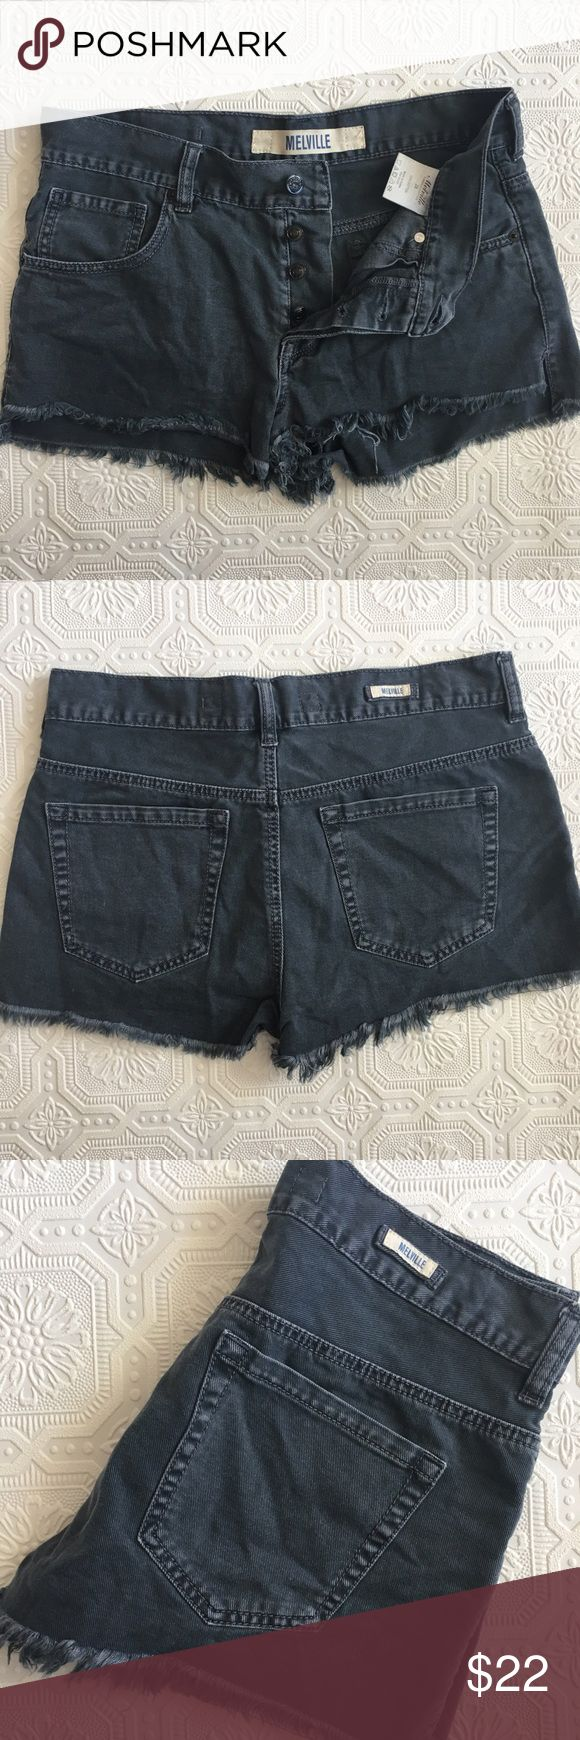 "Brandy Melville Destructed Gray Shorts Brandy Melville gray soft cotton shorts with frayed hems. Five pocket style with belt loops. Black buttons - all hidden except top one. Size 28. Waist measures 15.5"" across when laid flat. Short inseam. In very good used condition - broken in, but no stains or holes. Brandy Melville Shorts Jean Shorts"